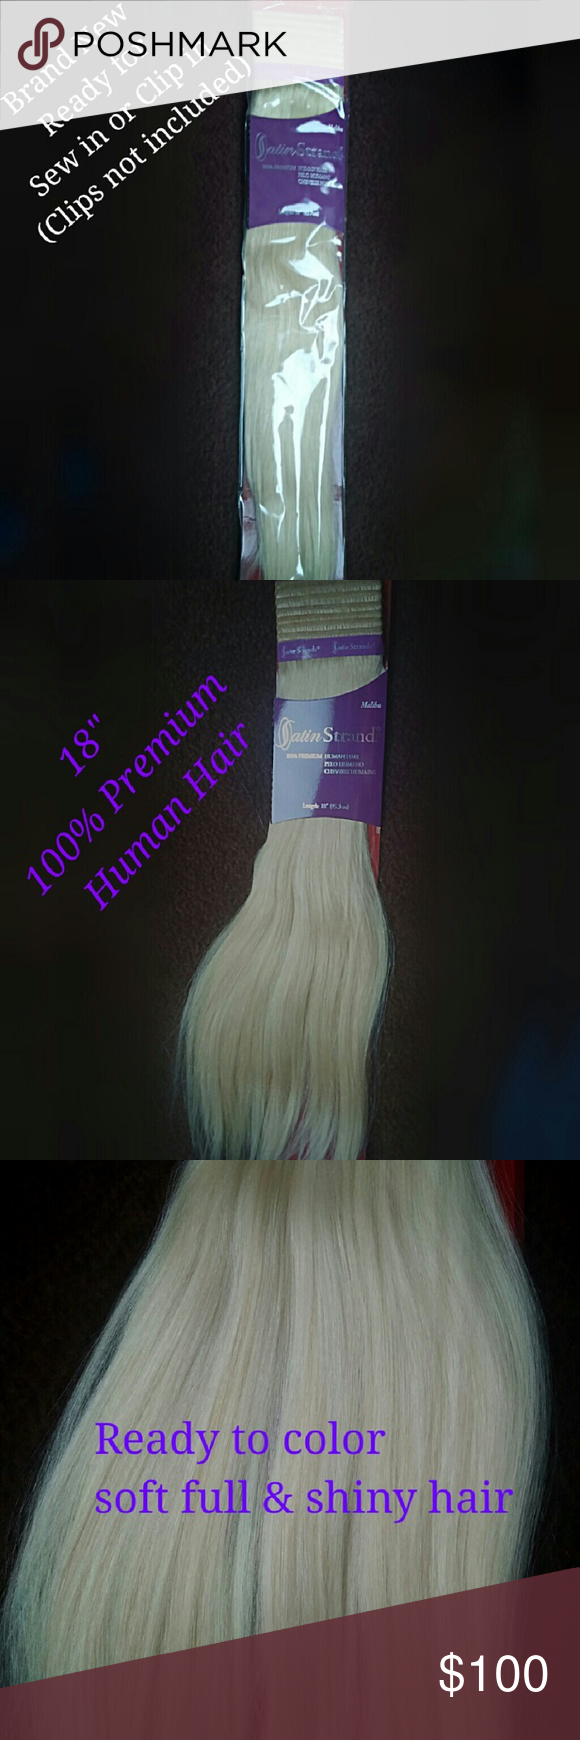 Satin Strands 18 Remy 100 Human Hair Extensions Nwt Pinterest